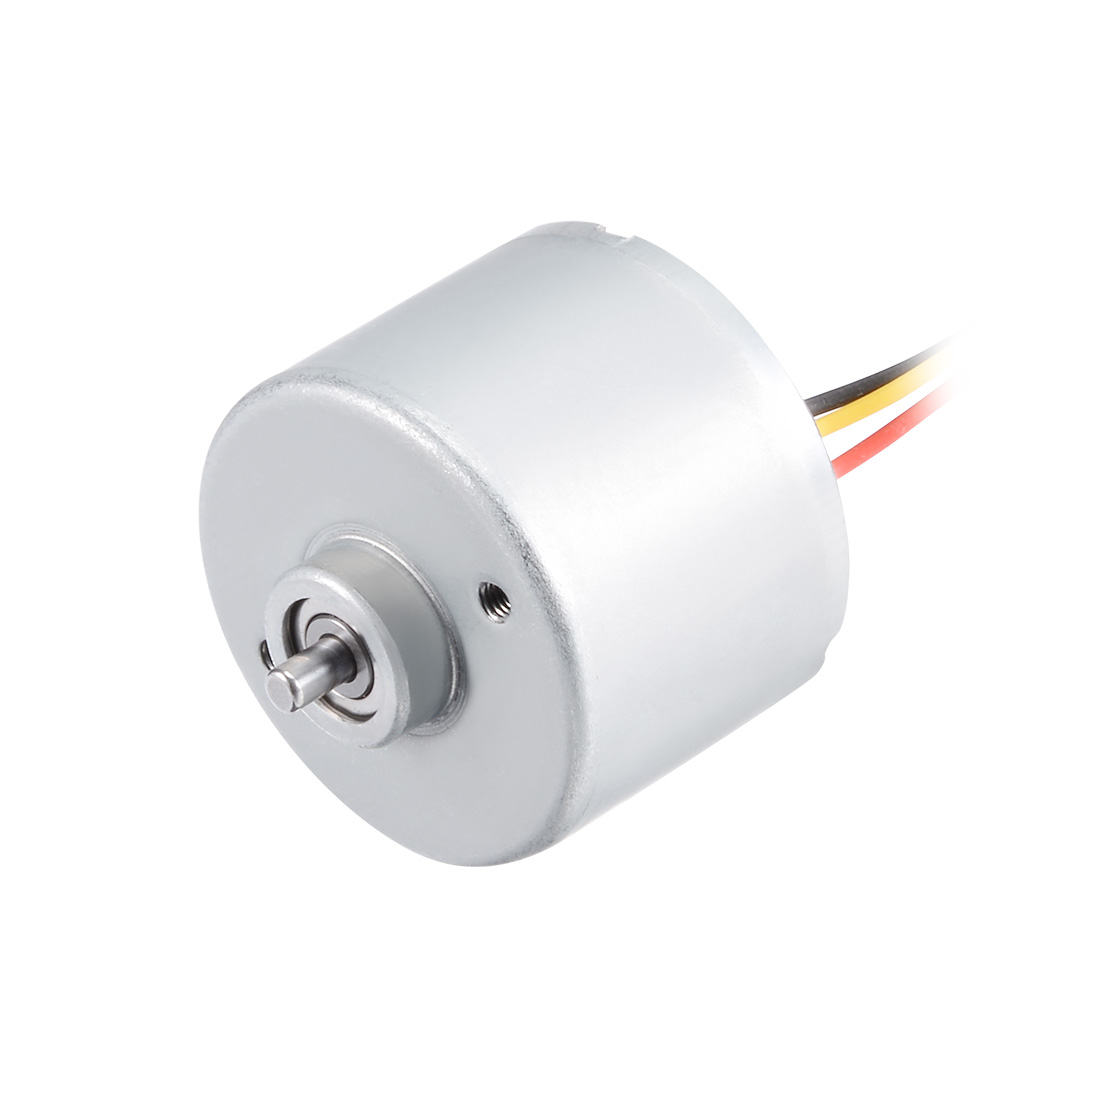 Small Motor DC24V 6000RPM 3 Wire High Speed Motor for DIY Toy Car Remote Control